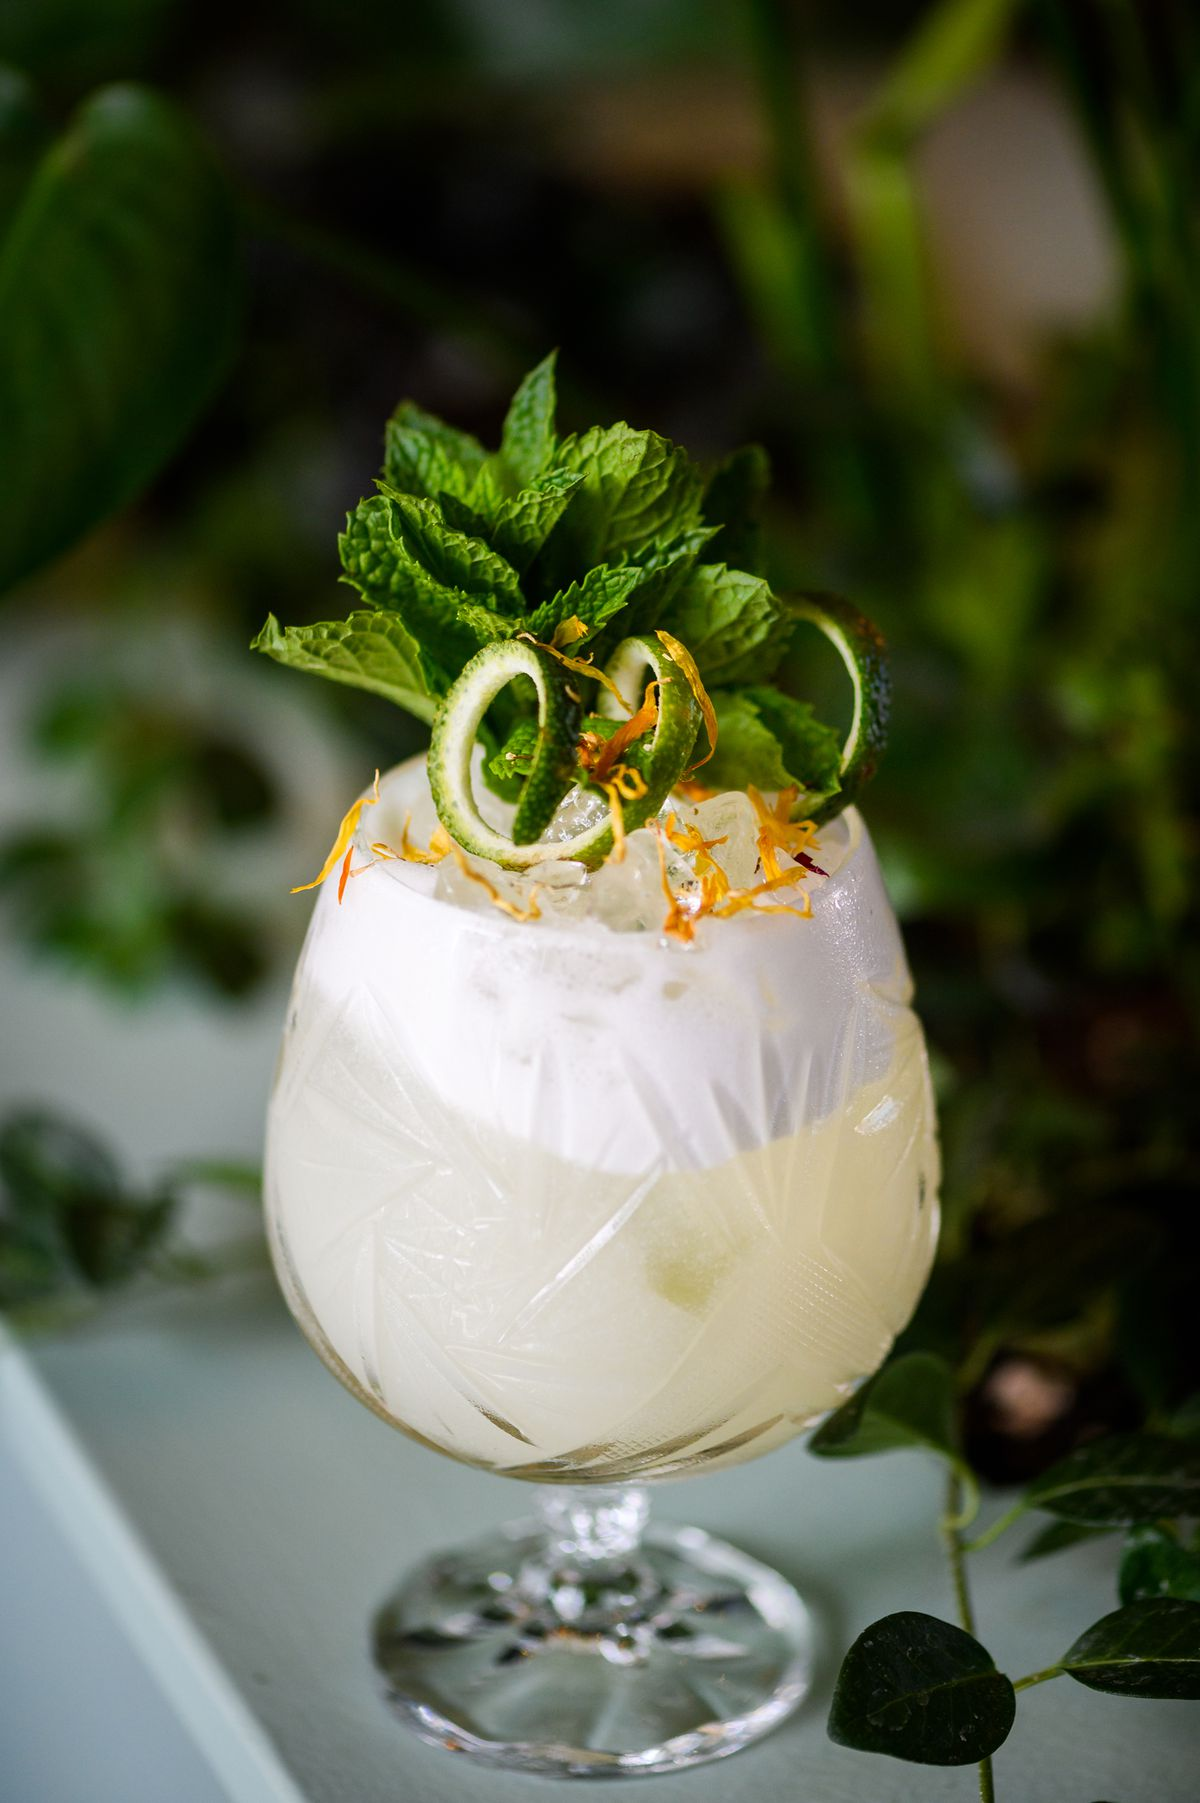 A short goblet holds a creamy white cocktail, topped with lemon peels, lime peels, and a bushel of mint